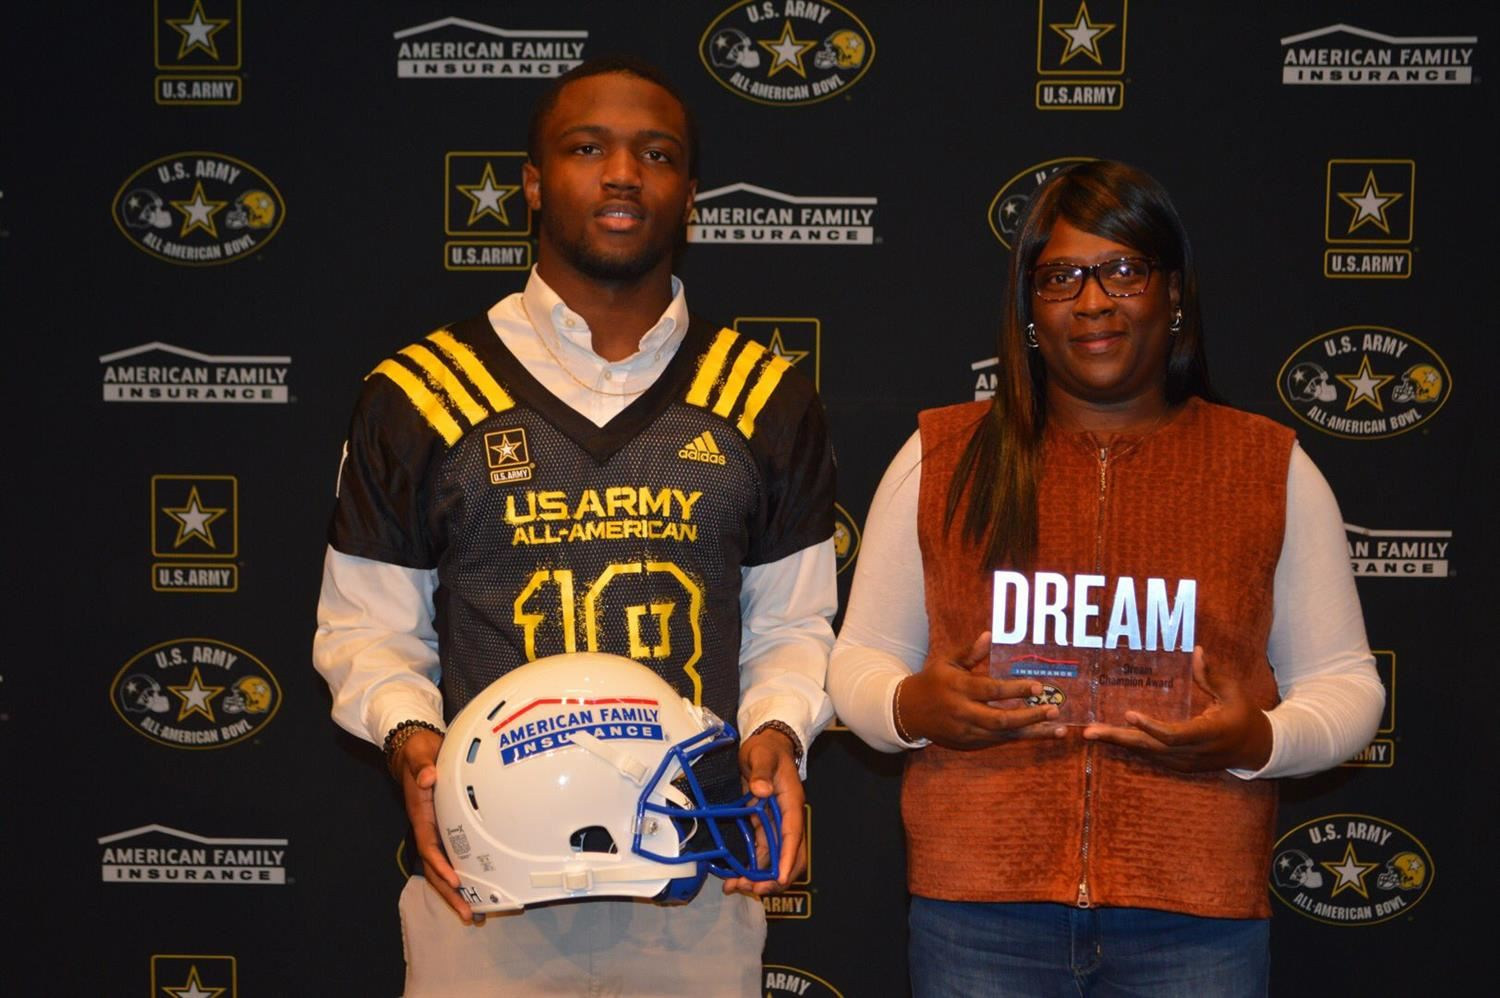 Heritage High School running back Ricky Person, pictured here with his mother, will play in the U.S. Army All-American Bowl.